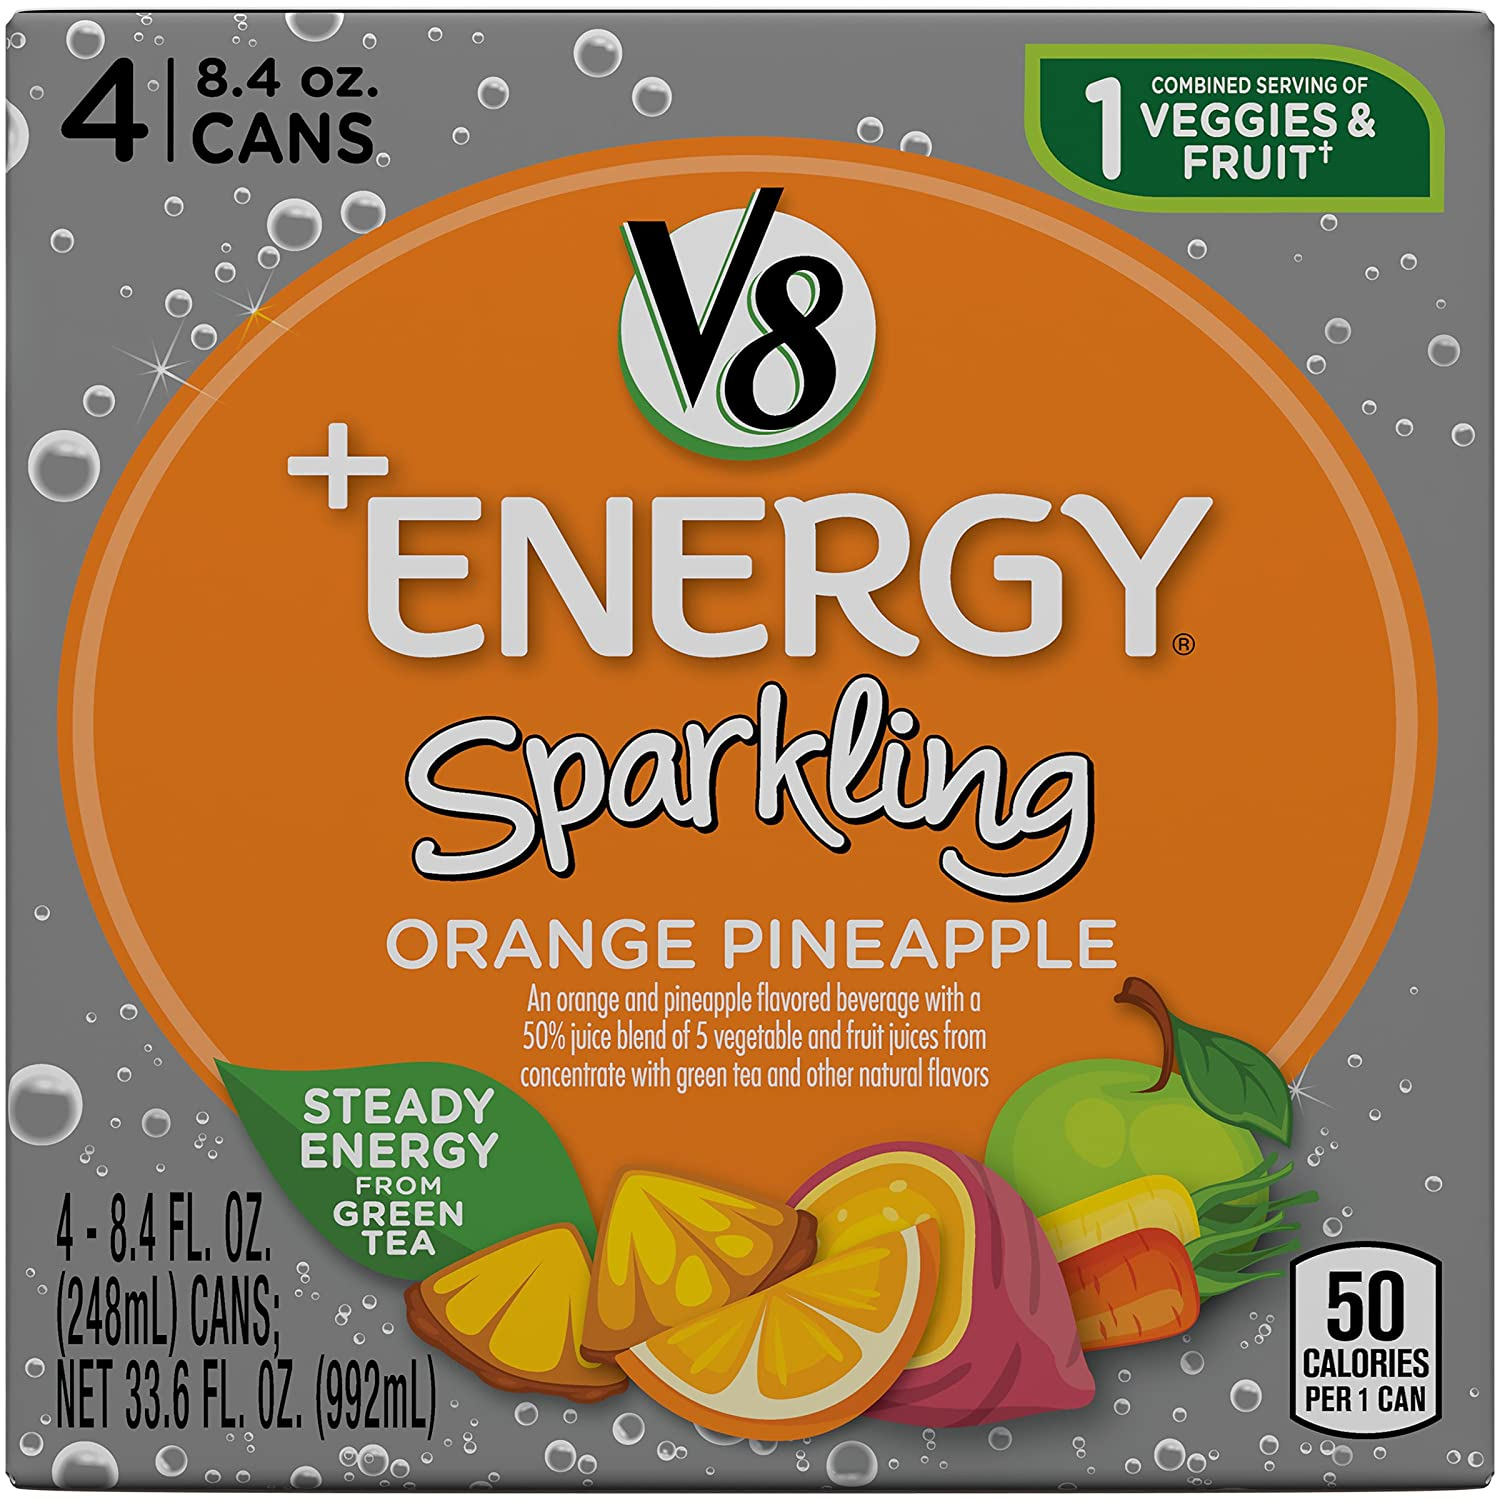 V8 +Energy Sparkling Healthy Energy Regular store T Drink Natural Easy-to-use from